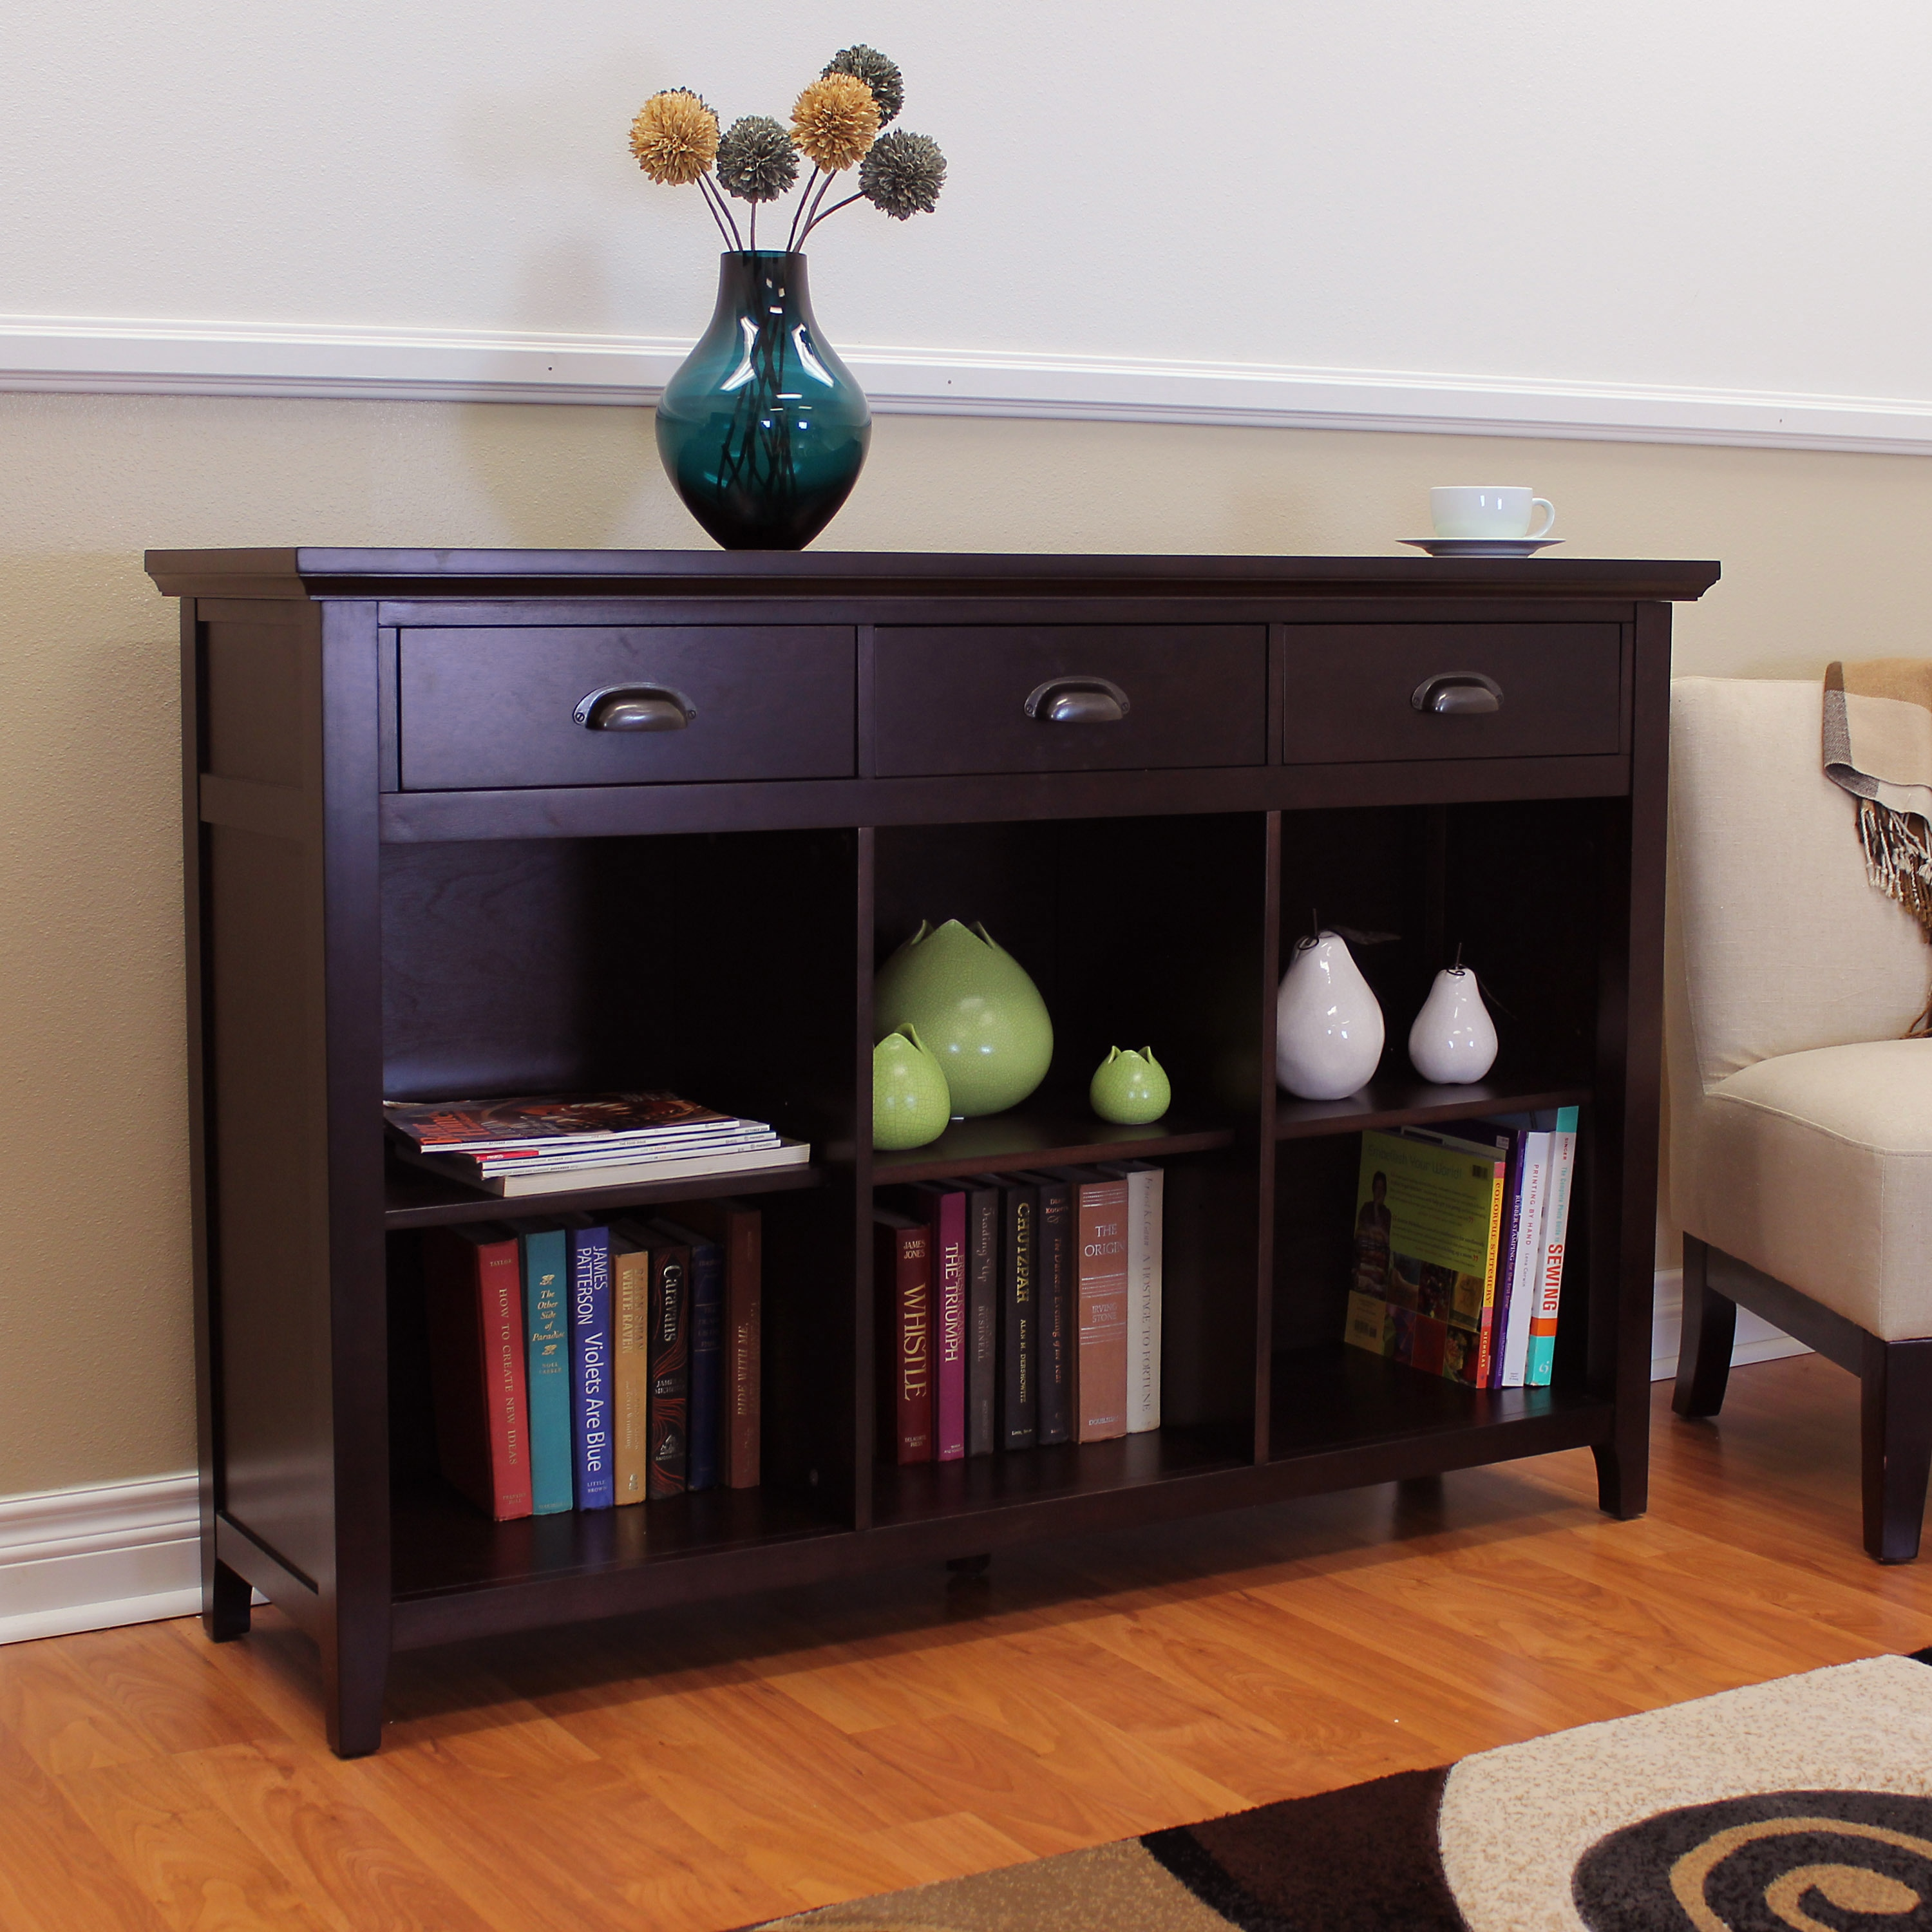 on overstock bookcase america deals espresso brigham pin shopping of great furniture geometric